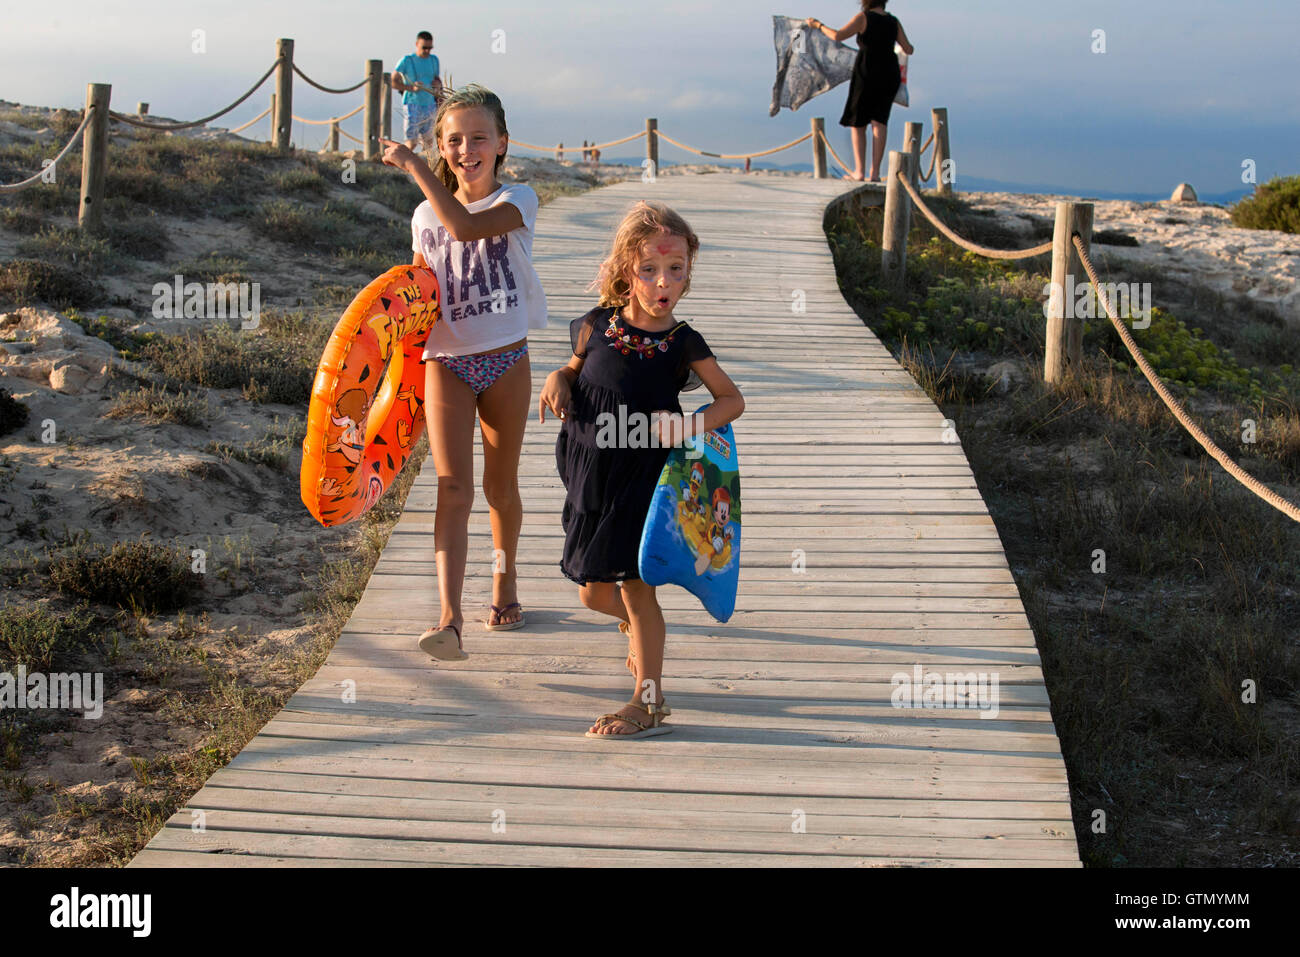 Sa Roqueta Beach and Ses Illetes Beach, Balearic Islands, Formentera, Spain. Funy girls with floats. - Stock Image